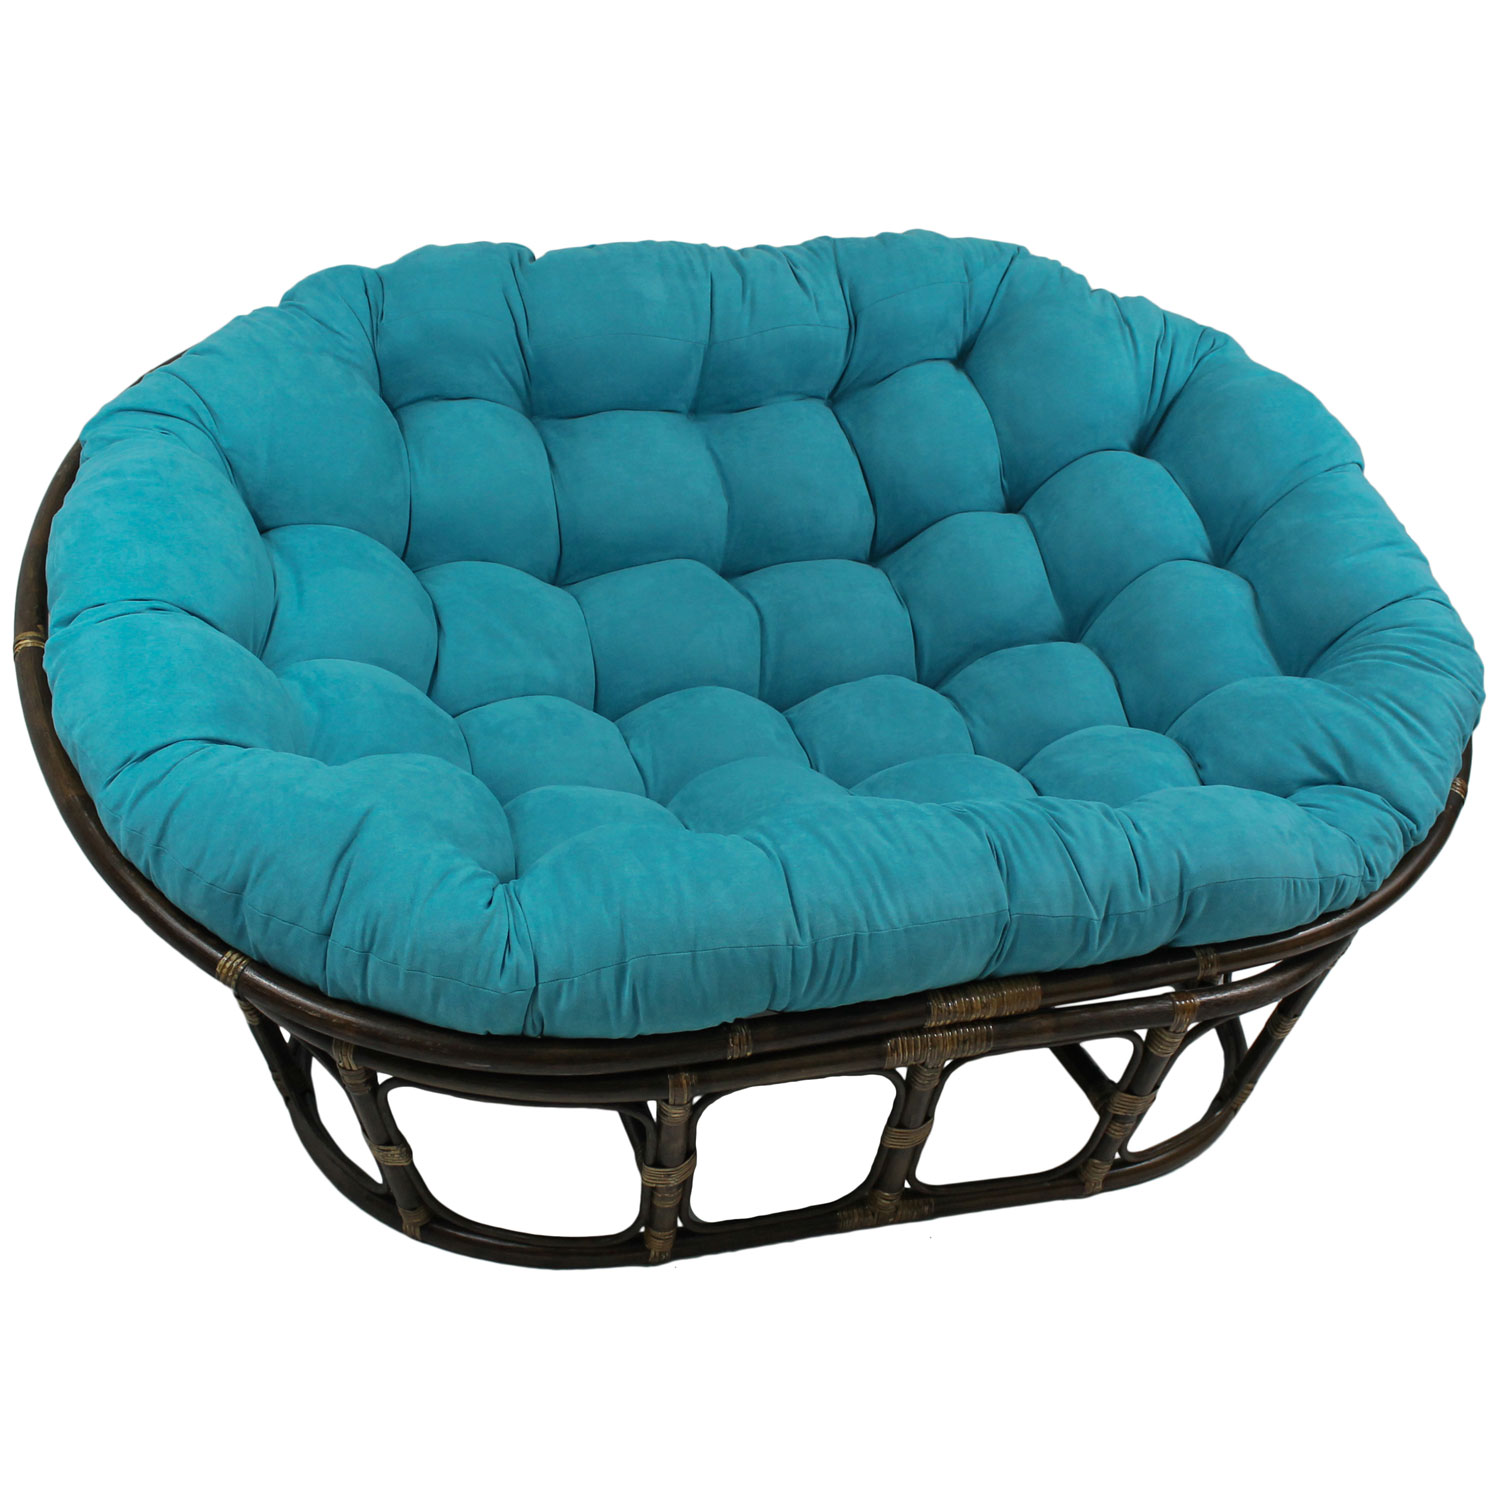 "78"" x 58"" Oversized Double Papasan Cushion - Tufted, Microsuede - BLZ-93304-OV-MS"